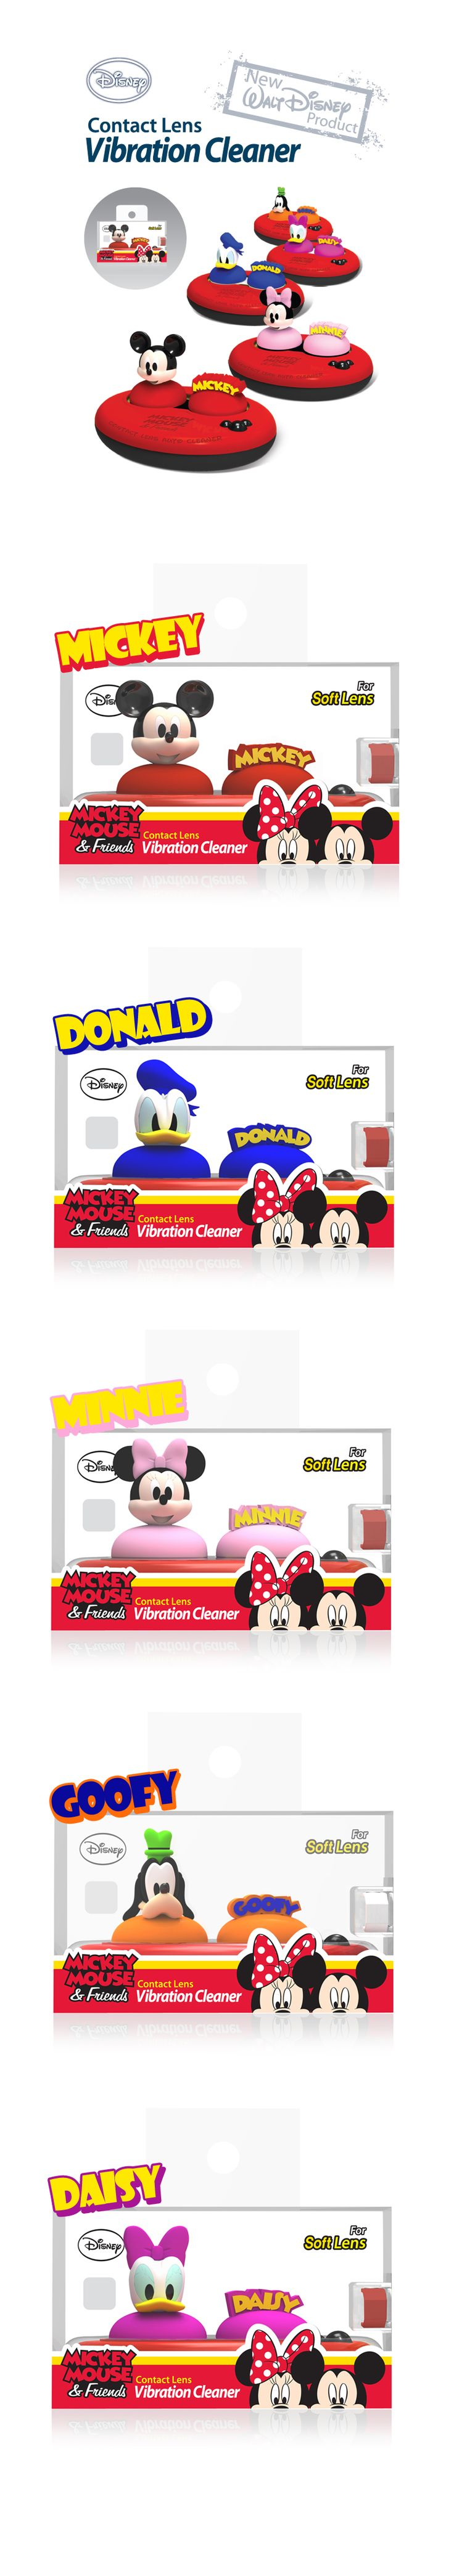 Disney Ipool Cleaner.  Pool ver. 2 now features our favorite beloved Disney characters Mickey & Minnie and Donald & Daisy!  IPOOL is an auto contact lens cleaner that utilizes advanced silver nano-particle technology to effectively clean your contact lenses. It is the ideal solution that provides your everyday routine job with ease.   The IPOOL cleaner includes a cute anti-bacterial lens case and is also compatible with Miofriends cases.  You can put the case into the IPOOL device and switch…